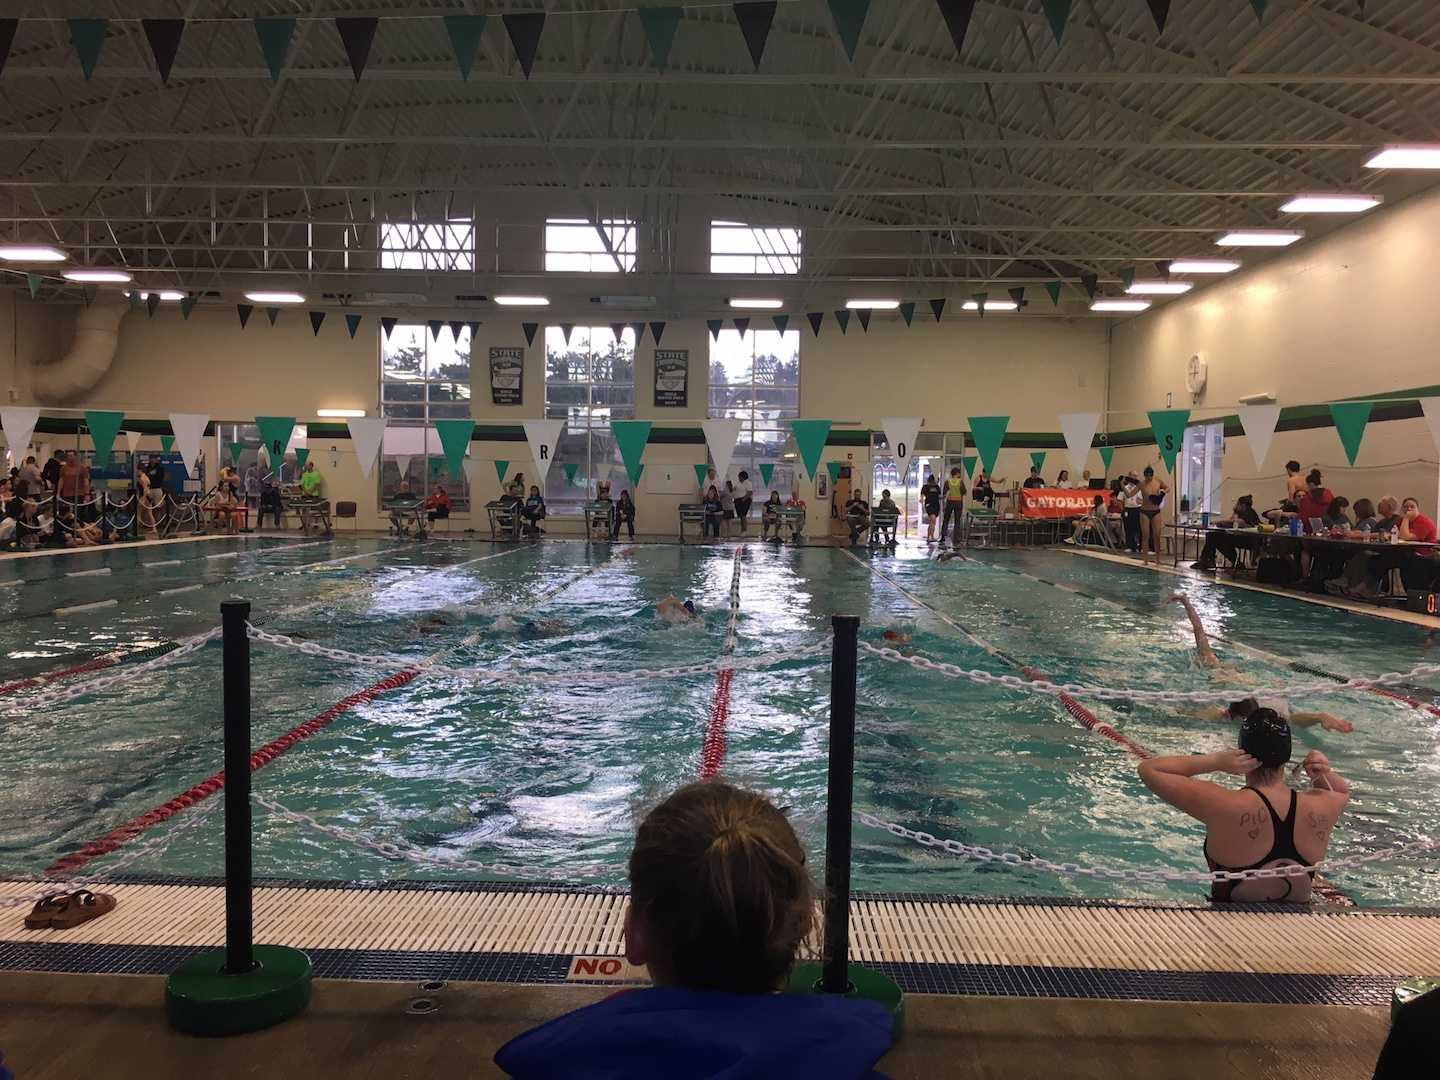 La+Salle+Swim+Team+is+Looking+to+Make+a+Splash+at+State